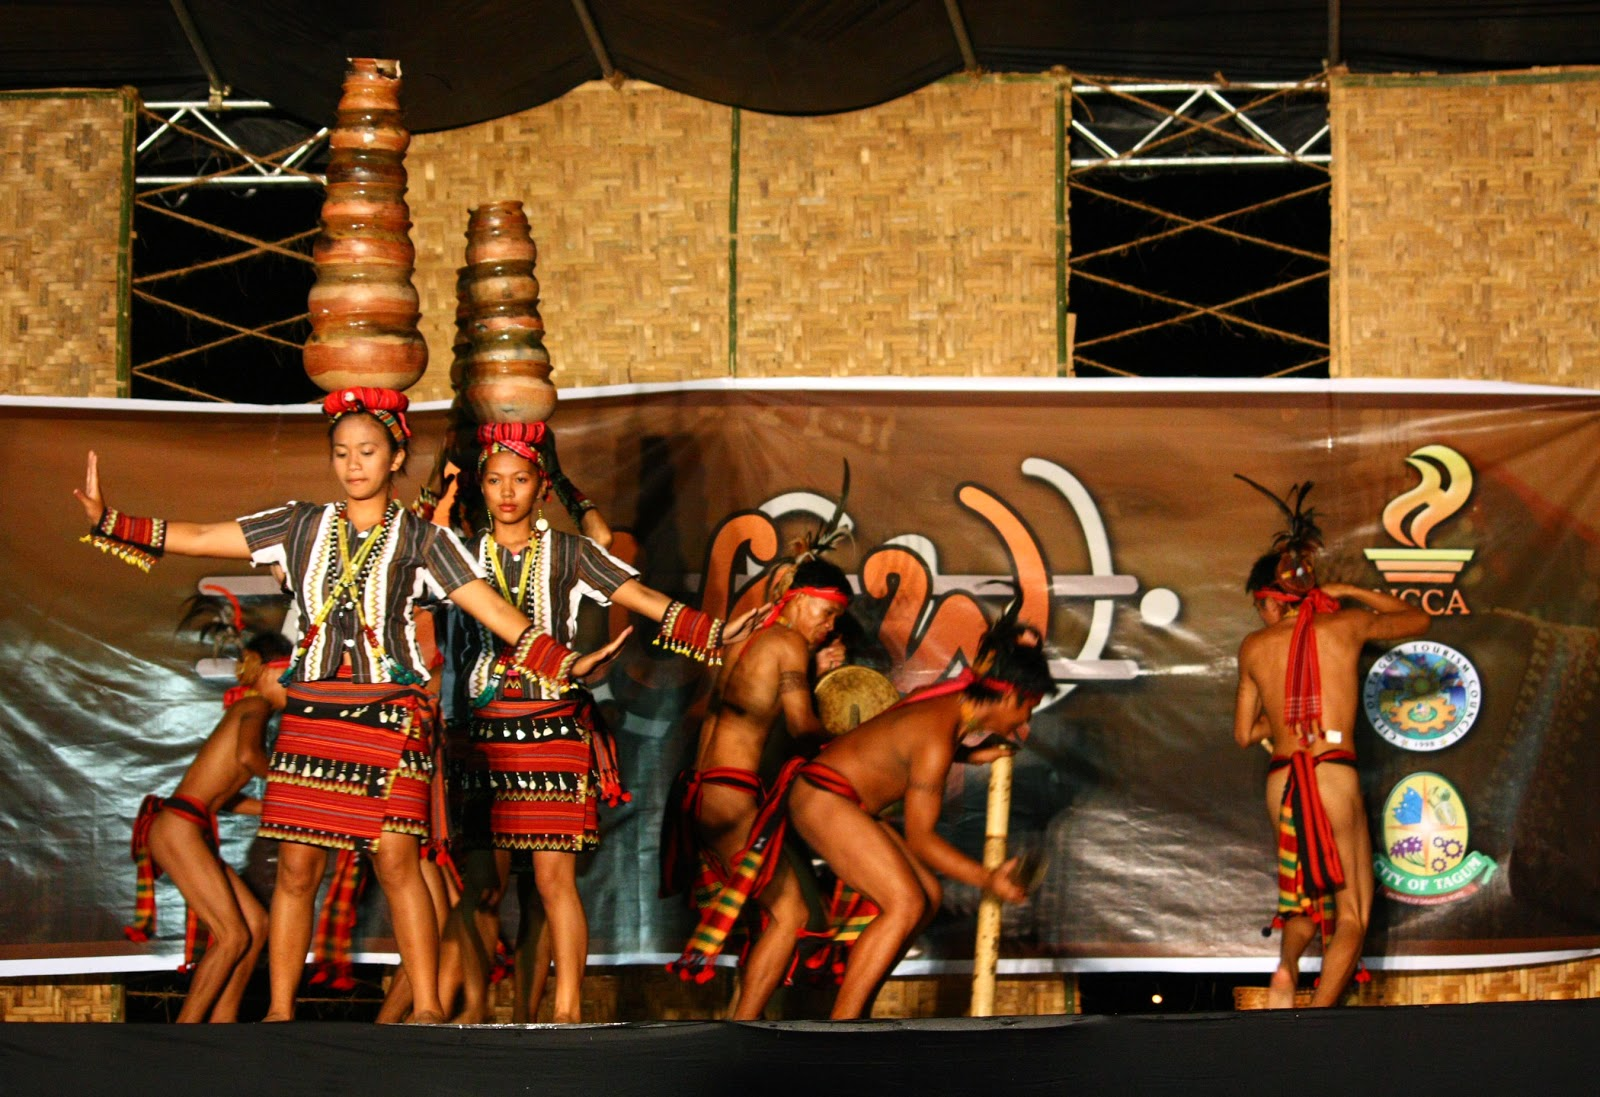 Watchthe songs and dances of the different indigenous groups of the